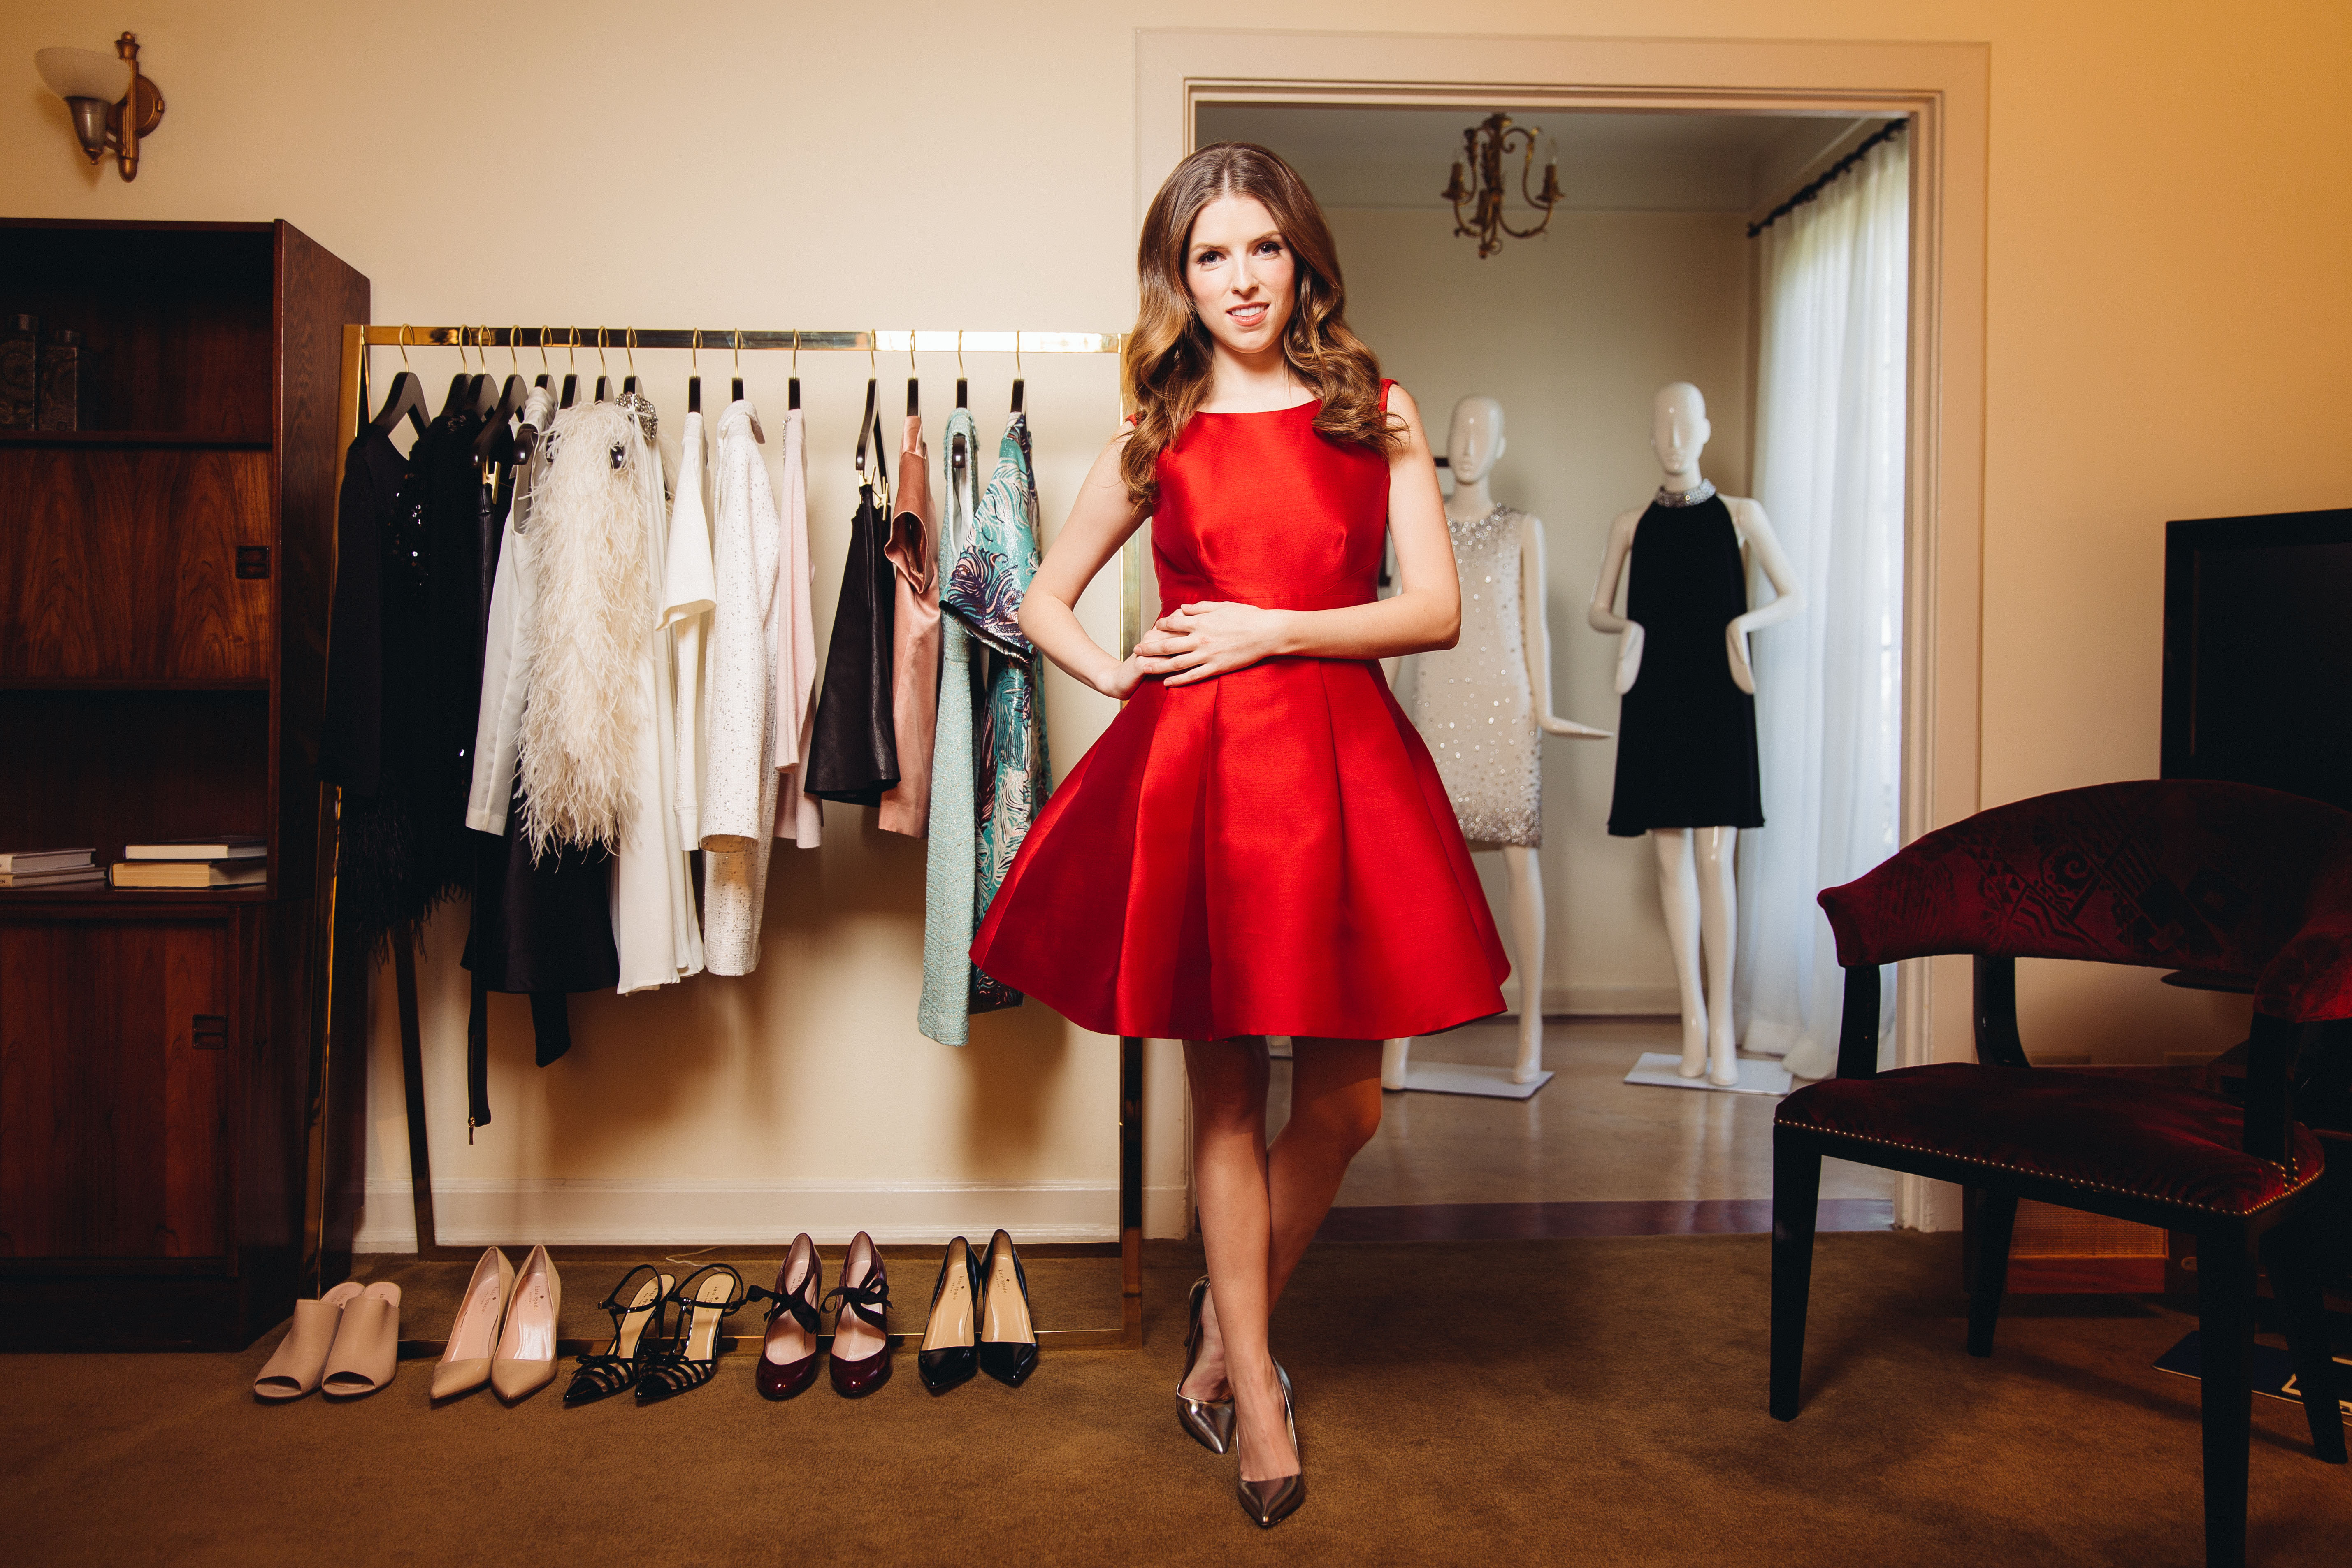 <div class='meta'><div class='origin-logo' data-origin='AP'></div><span class='caption-text' data-credit='Casey Curry/Invision/AP'>In this Friday, Oct. 3, 2014 photo, Anna Kendrick posesin West Hollywood, Calif. Her red, sleeveless party dress is from Kate Spade New York's holiday collection</span></div>